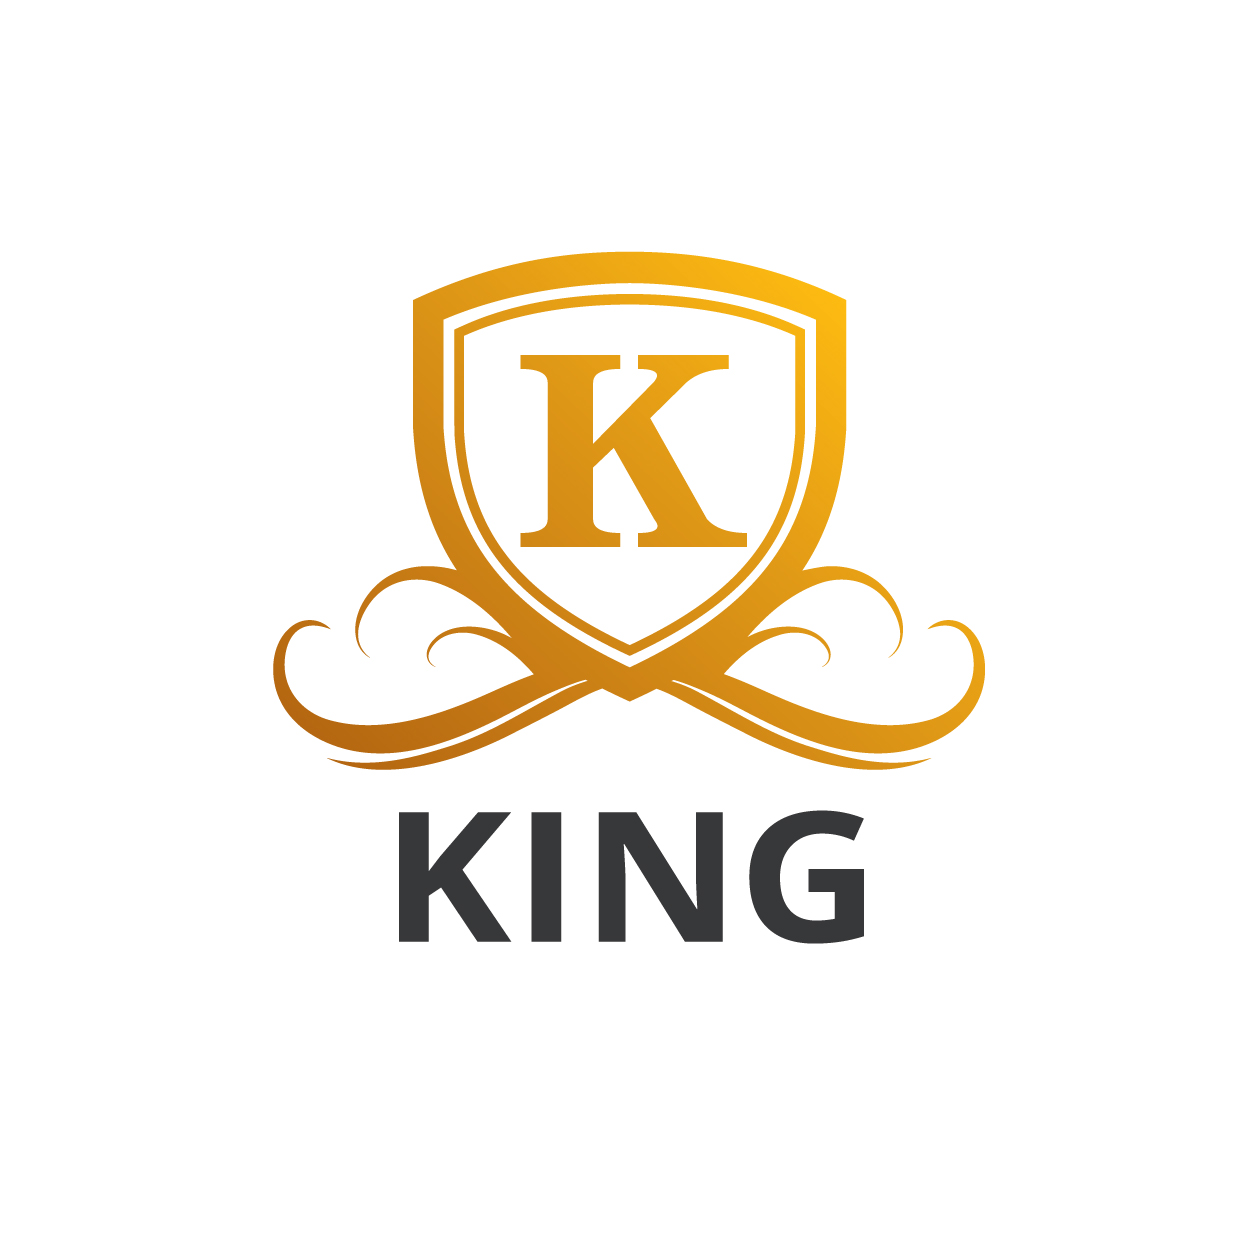 King Professional Development